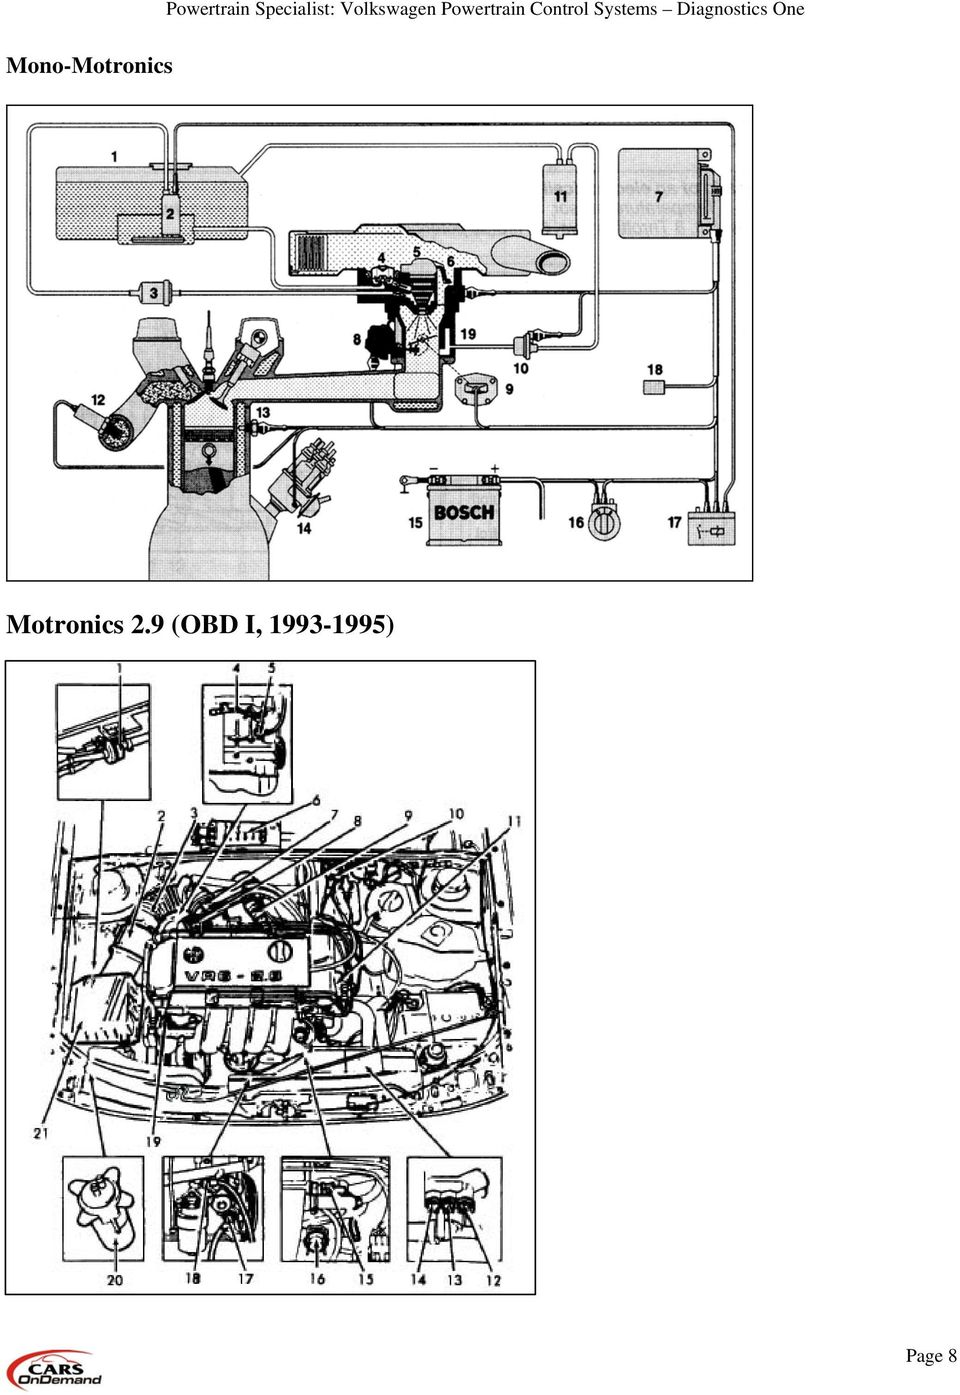 Volkswagen Powertrain Control Systems Diagnostics One Pdf 2000 Vw Eurovan Fuse Box Diagram 11 Sensors Engine Coolant Temperature Sensor Mounted In The Block Water Jacket Reports To Ecu A Form Of Resistance